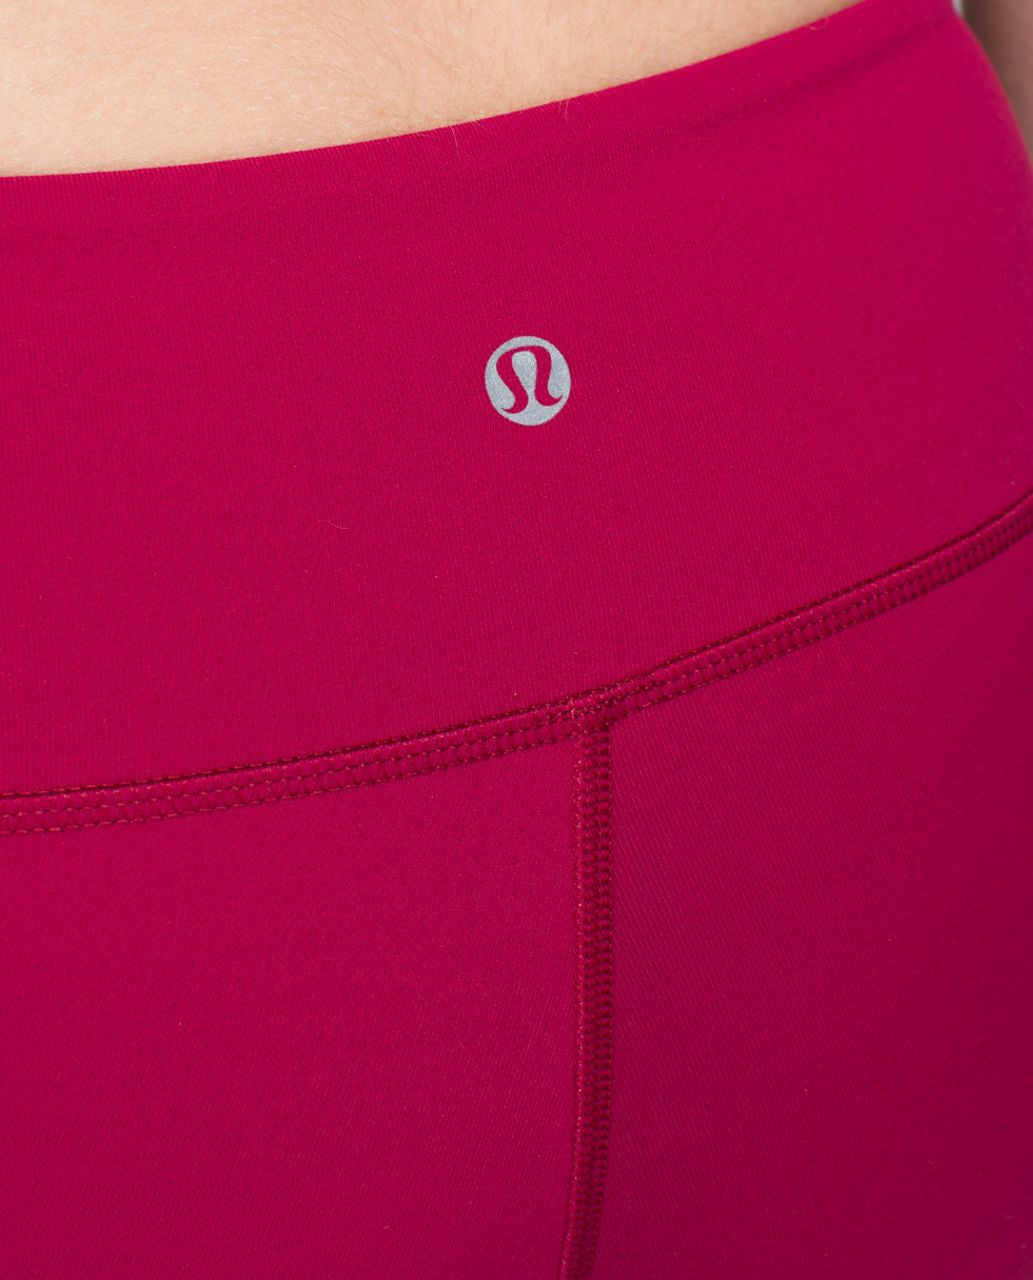 Lululemon Wunder Under Crop II *Full-On Luon - Bumble Berry